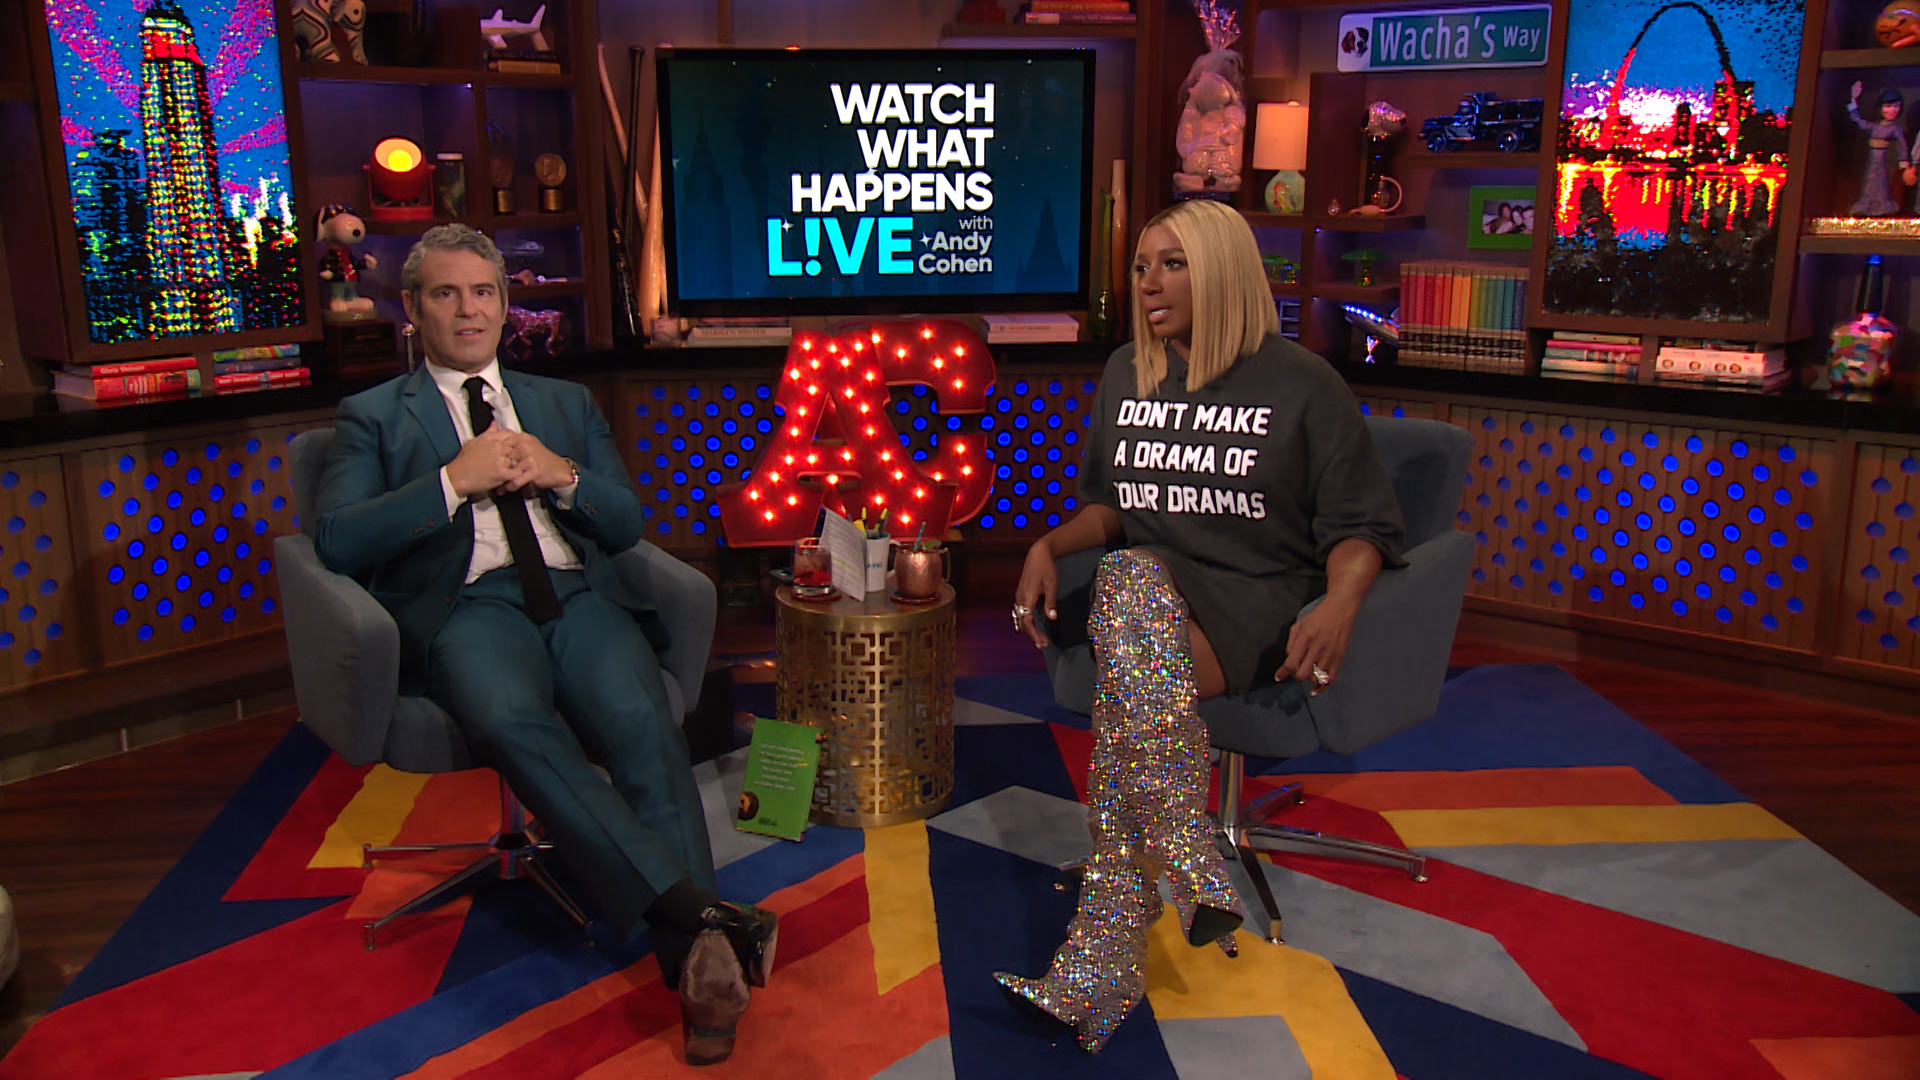 After Show: Would NeNe Return to 'Wendy Williams'?